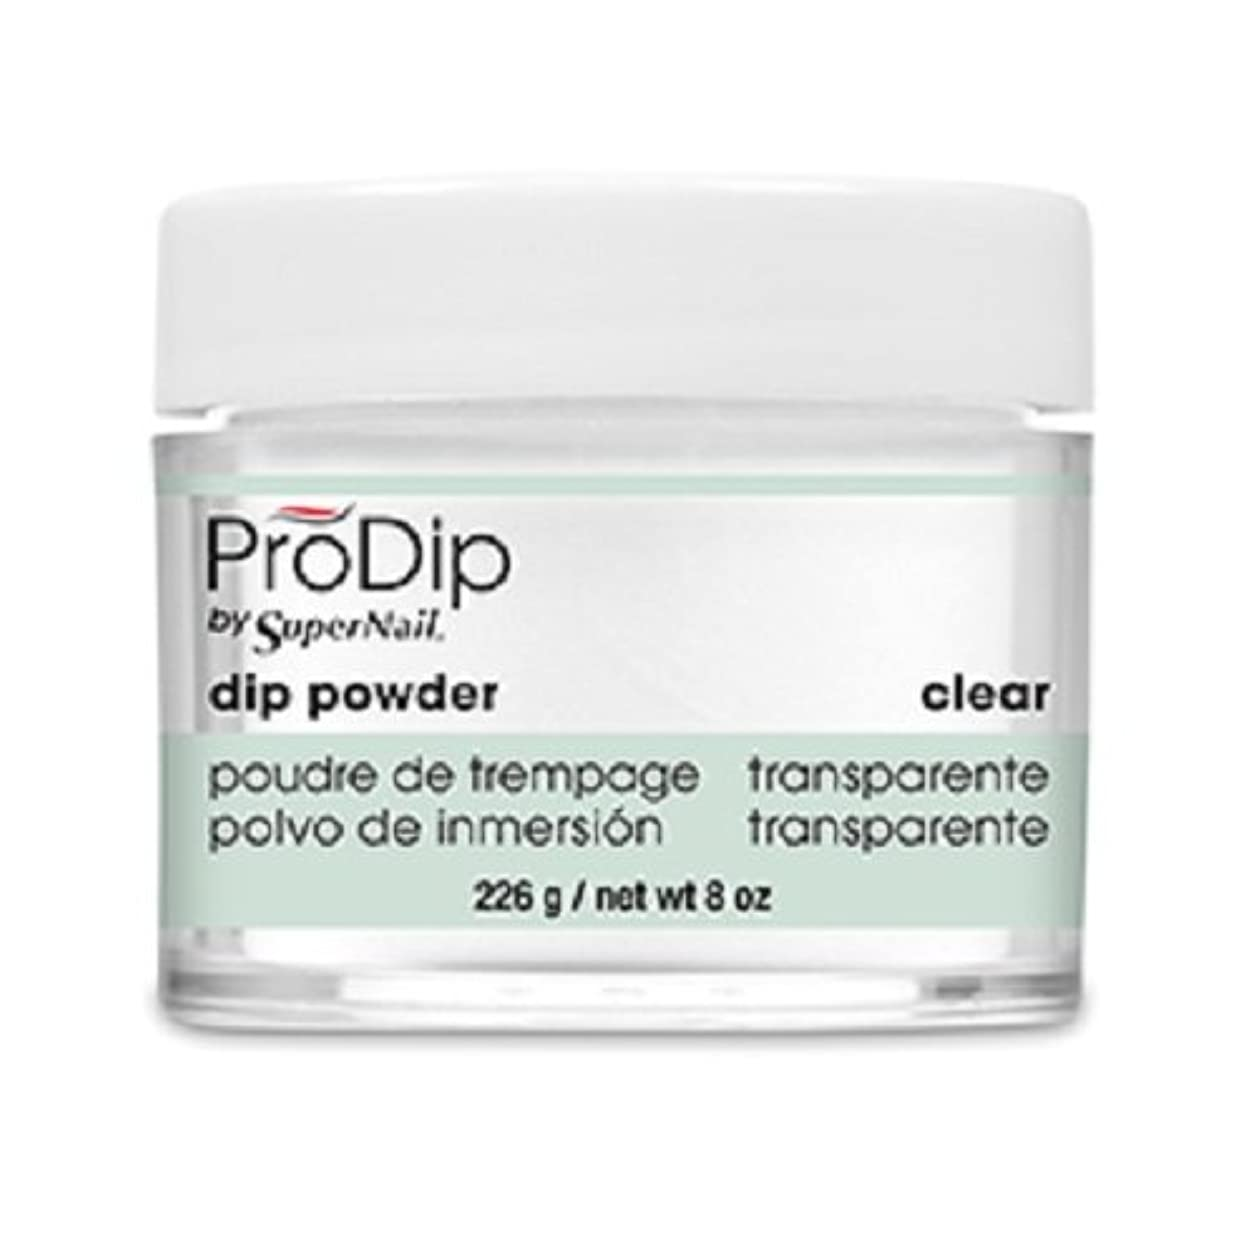 SuperNail - ProDip - Dip Powder - Clear - 226 g/8 oz